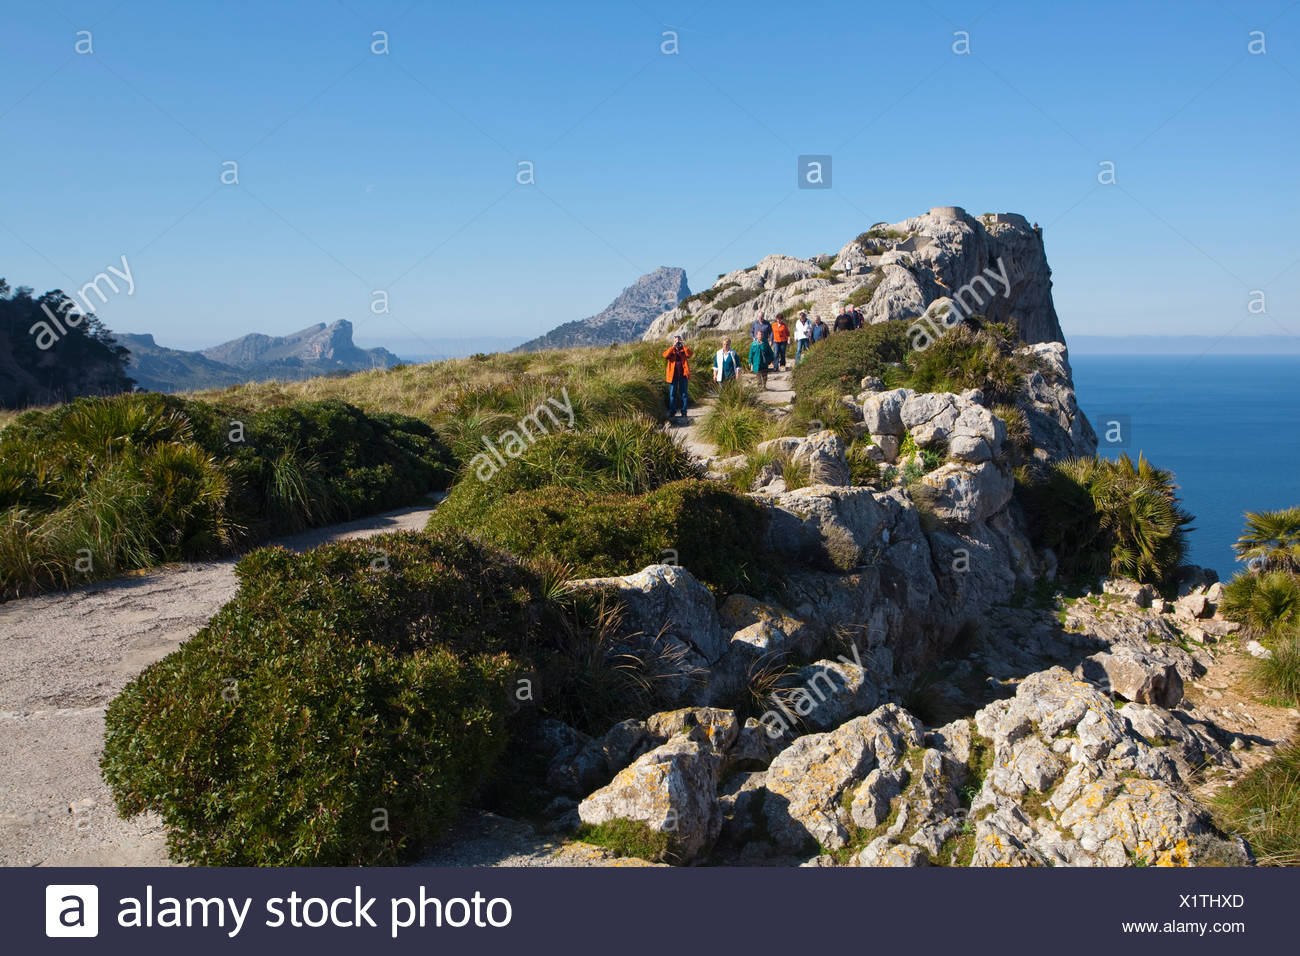 Look-out point of Mirador de Mal Pas, on the road to Cap Formentor, Majorca, Balearic Islands, Spain, Mediterranean Sea, Europe - Stock Image